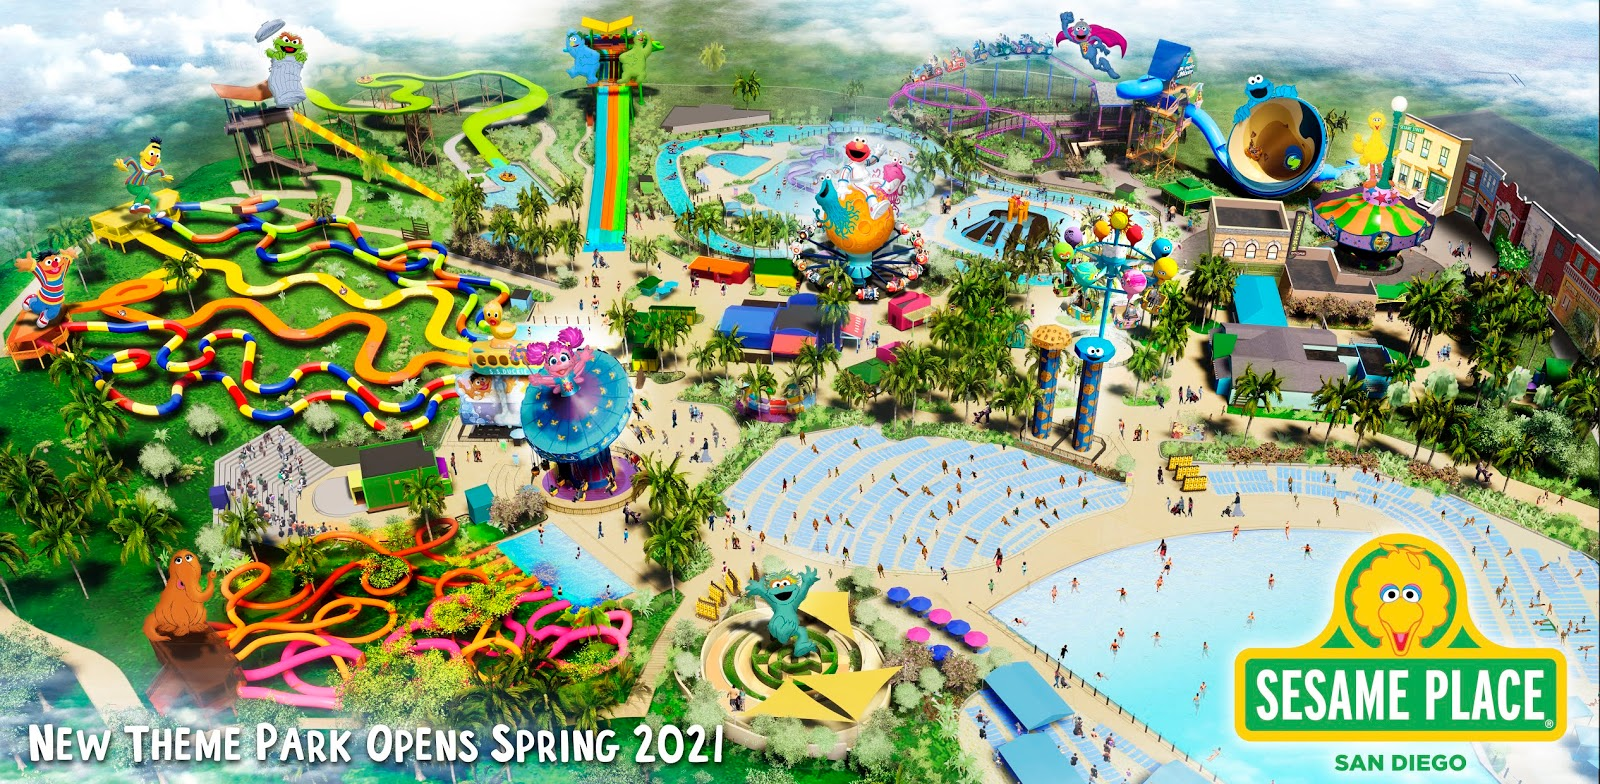 Aquatica San Diego becomes Sesame Place in 2021